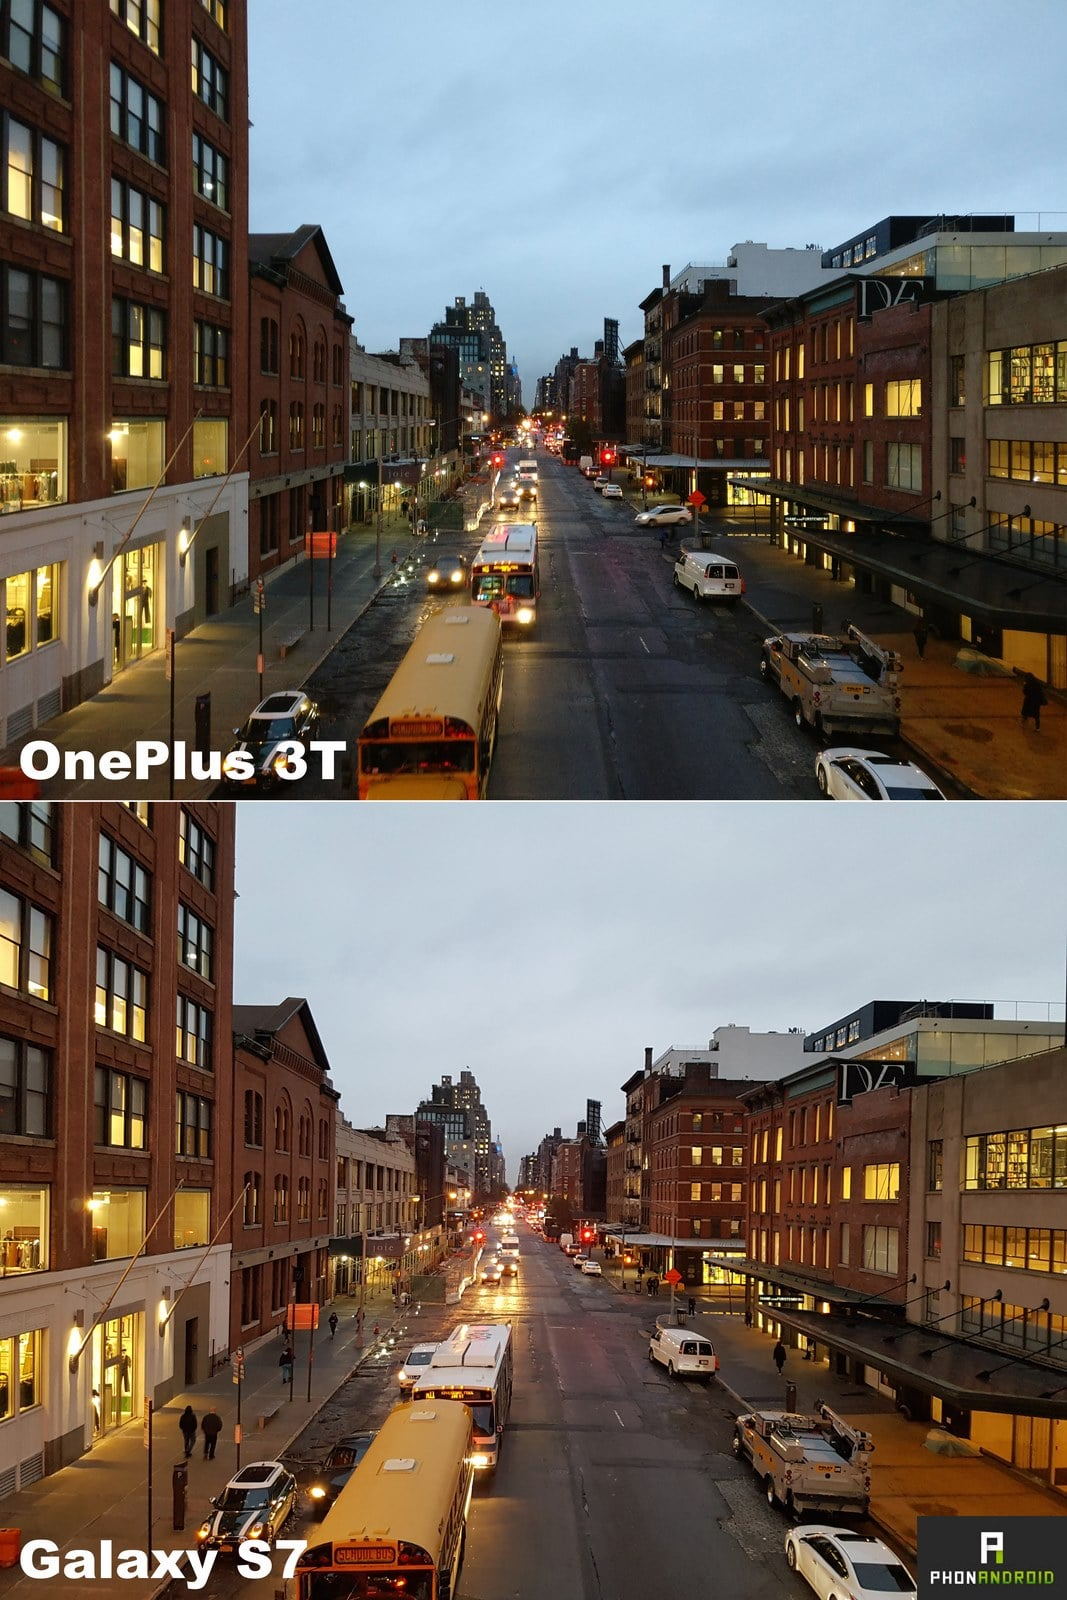 comparatif photo oneplus 3t galaxy s7